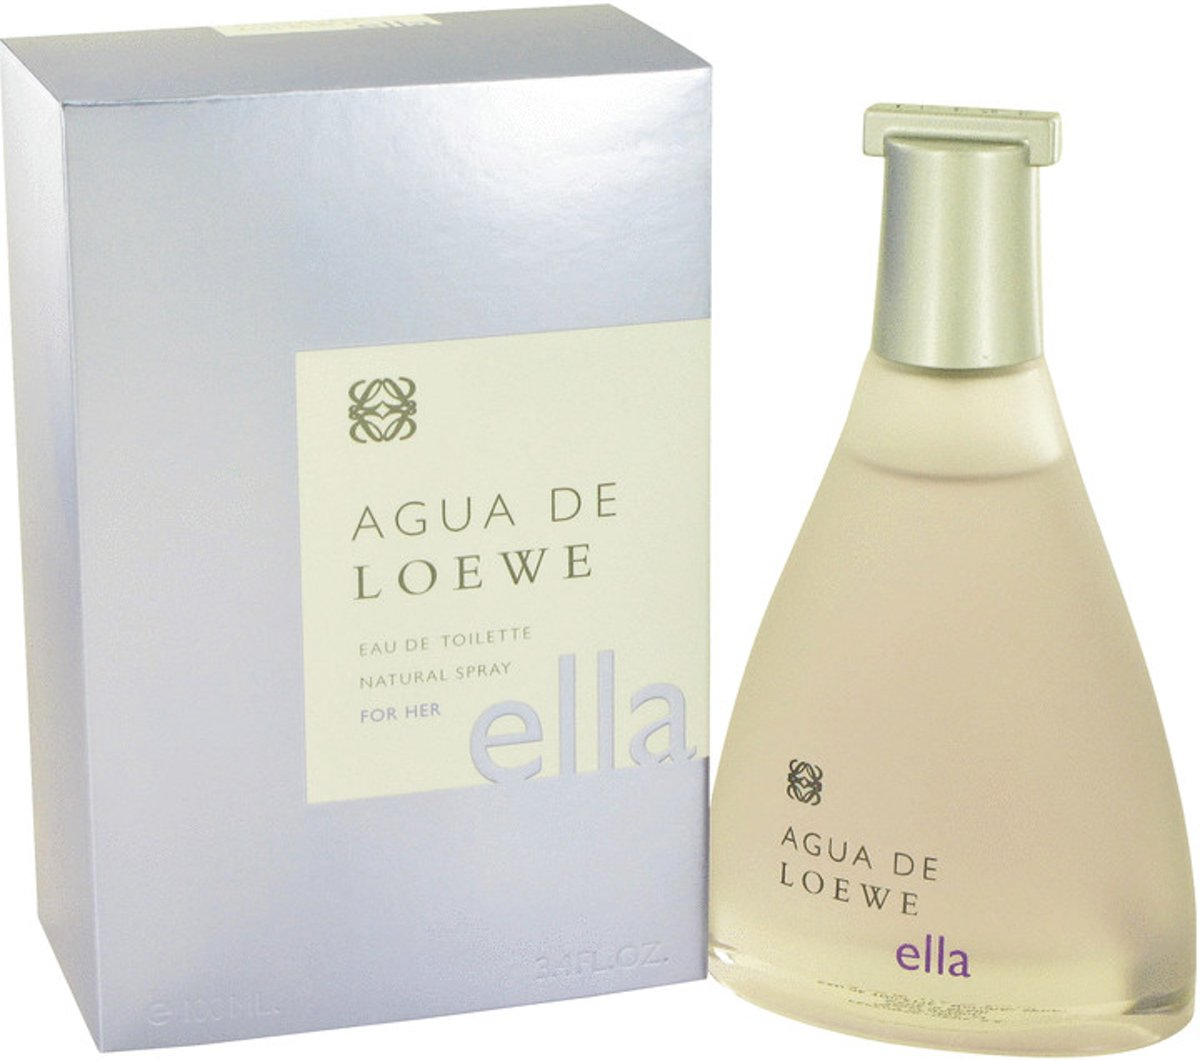 Loewe Agua De Ella 151 ml - Eau De Toilette Spray Damesparfum